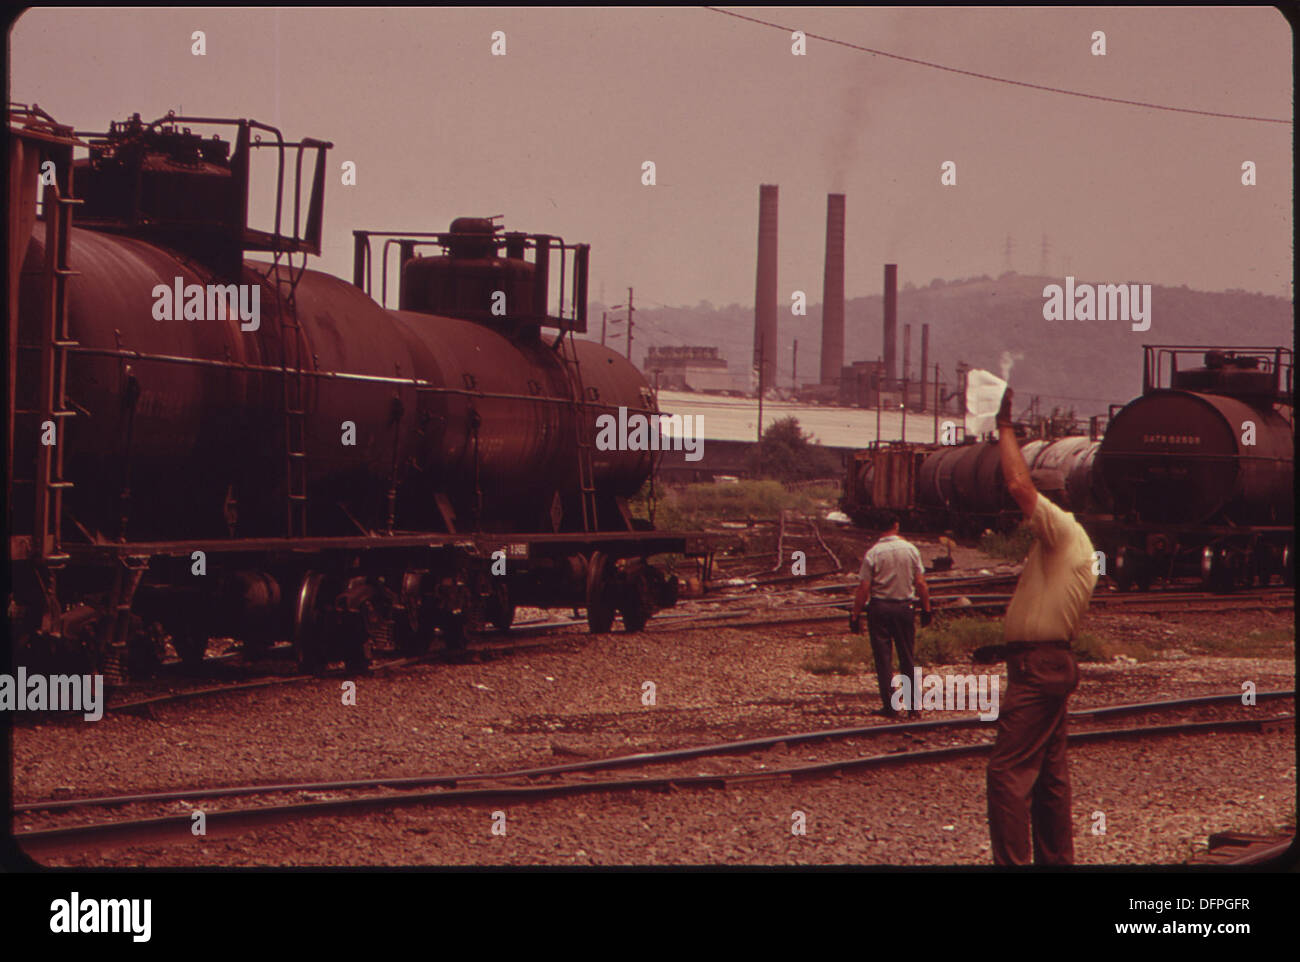 RAILROAD YARD AT NITRO WITH SMOKESTACKS OF THE FMC CHEMICAL CORPORATION IN BACKGROUND 551006 - Stock Image